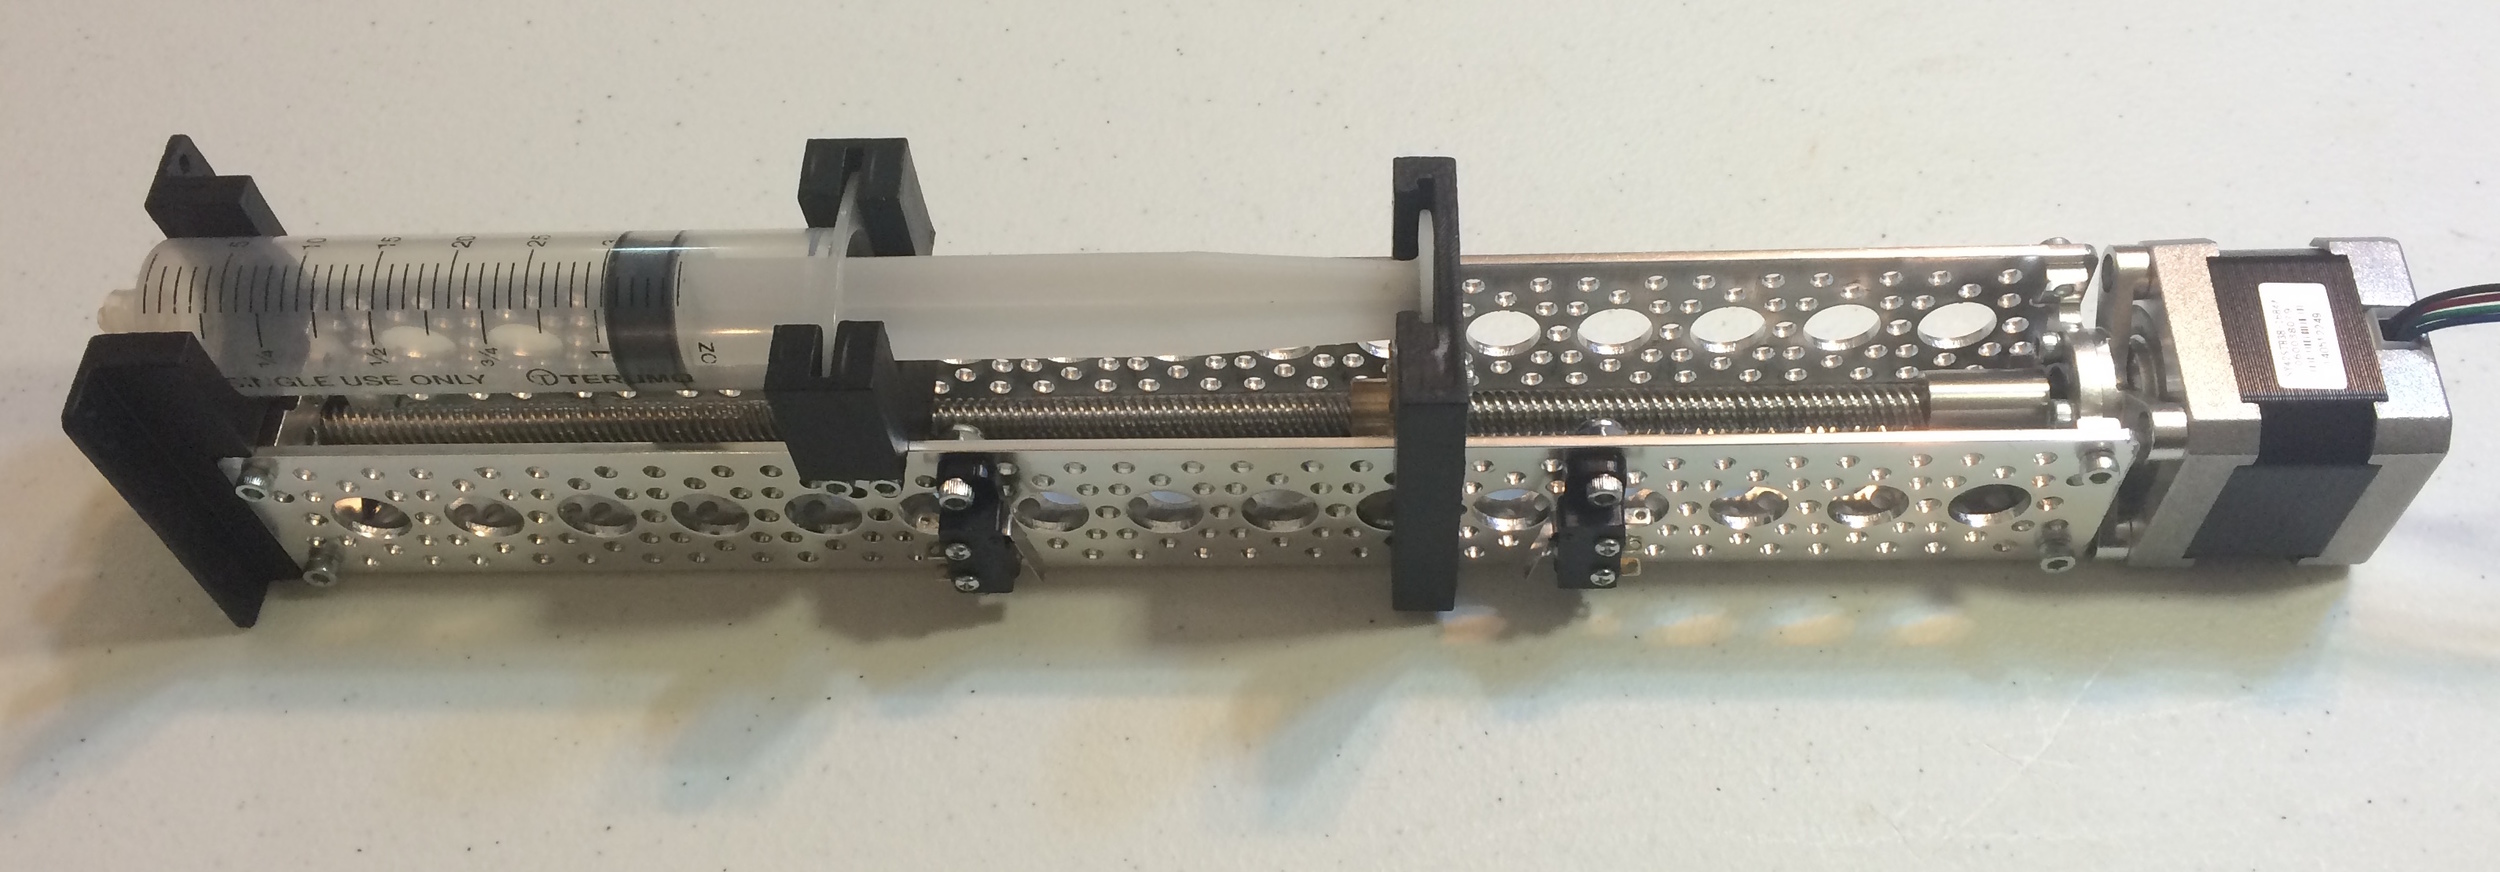 Completed syringe pump mechanical assembly.